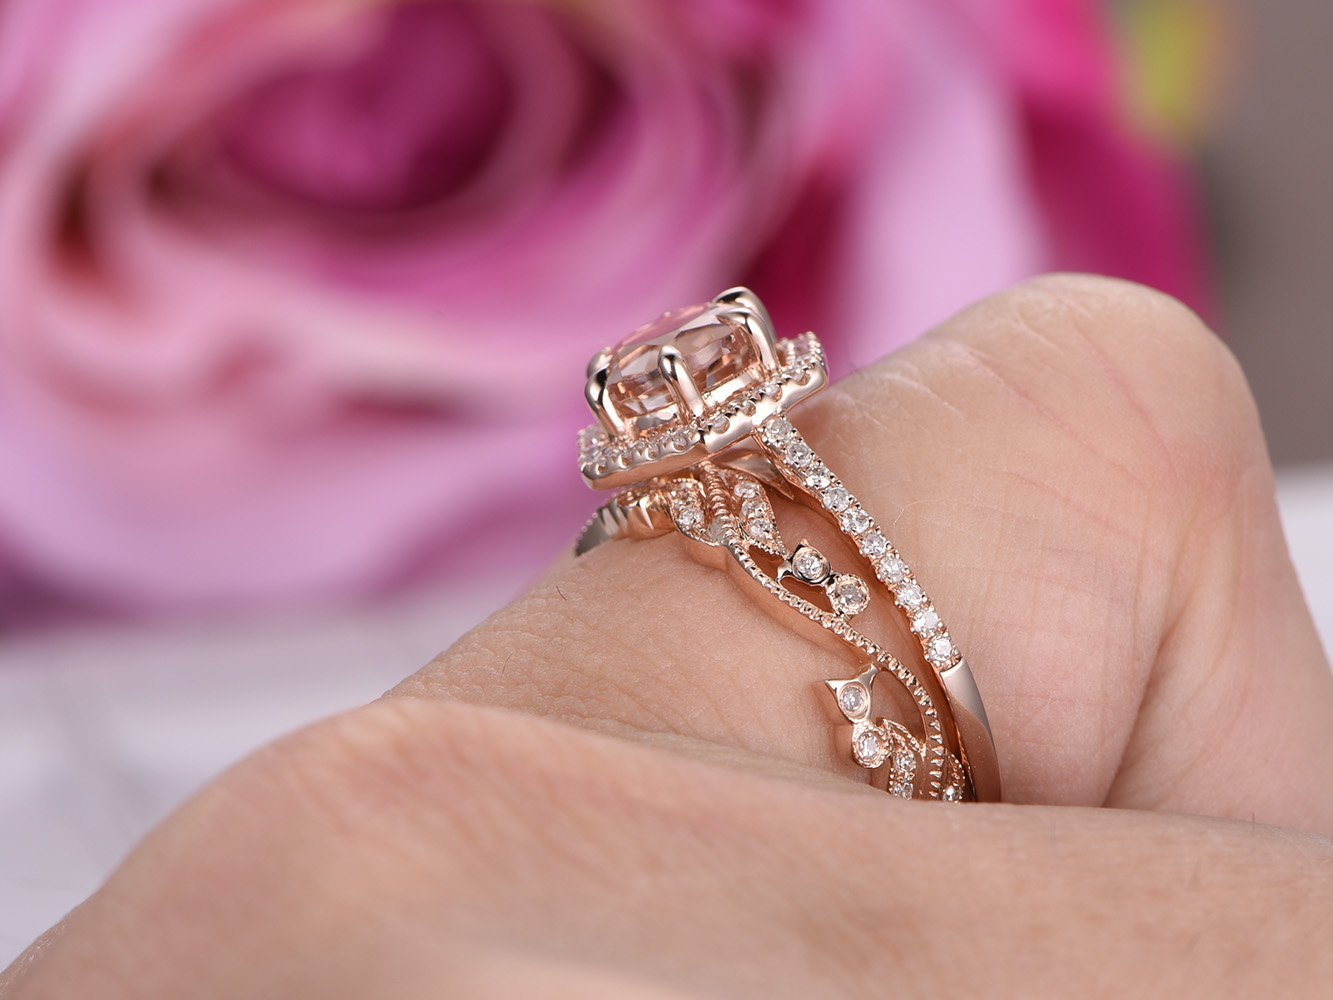 Amazon.com: Round Morganite Engagement Ring Set Pave Diamond Wedding ...